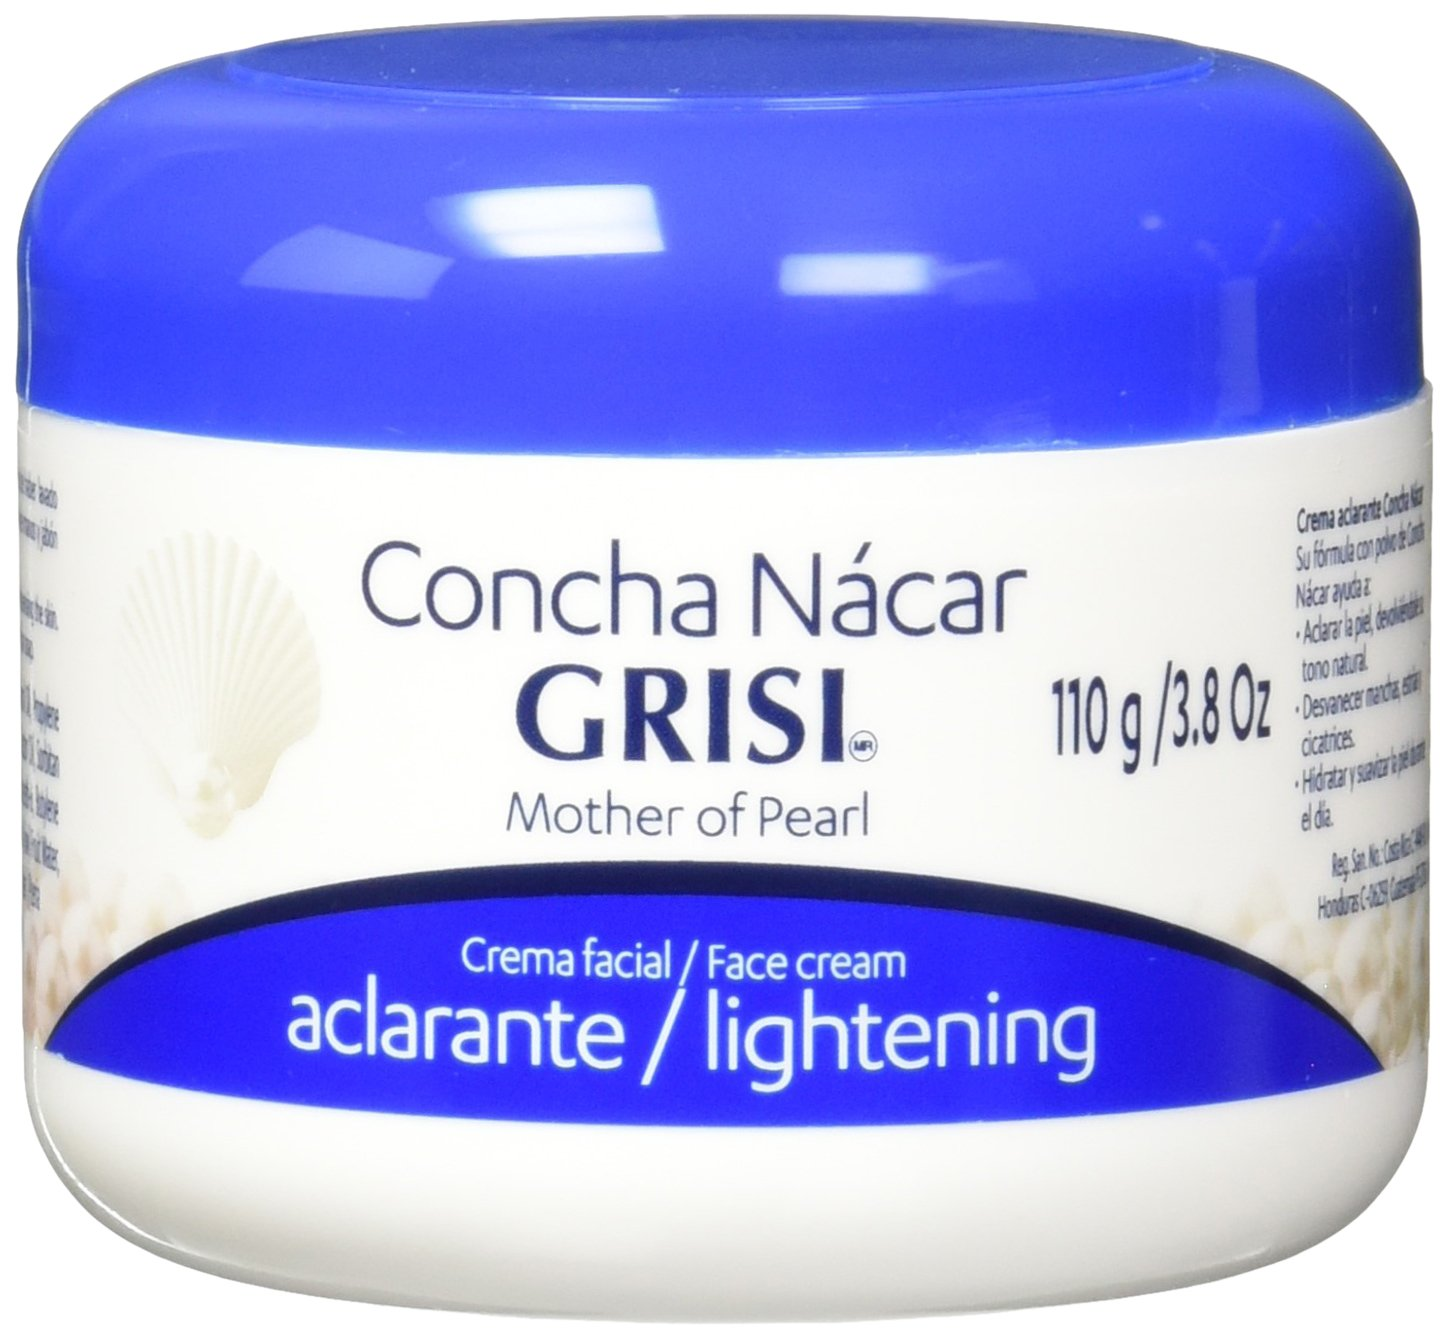 Concha Nacar Grisi Face Cream| Lightening Face Moisturizer for an Even Skin Tone, Skin